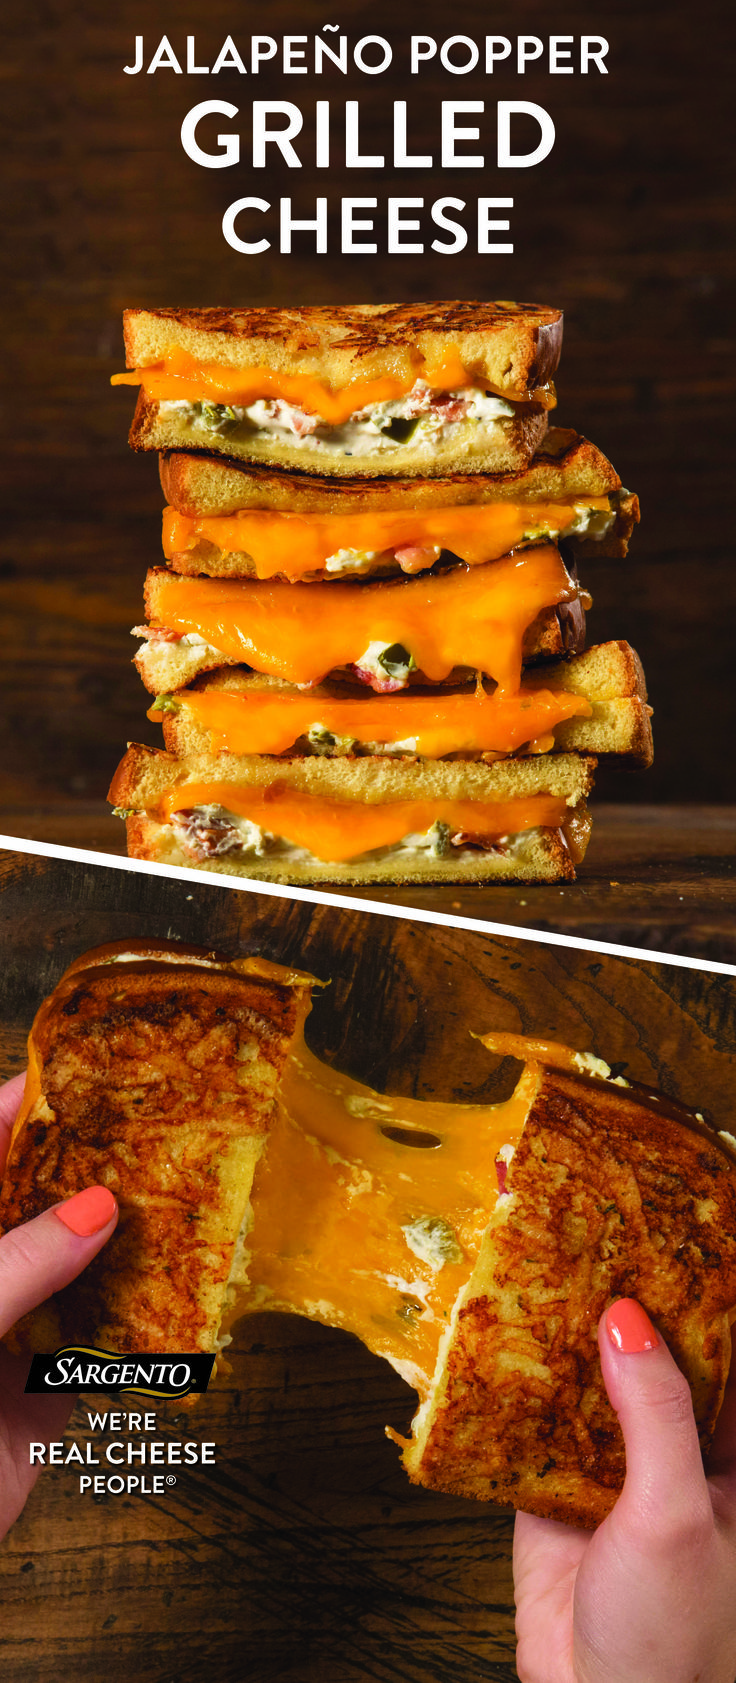 Give your next grilled cheese a kick with a jalapeño popper-inspired creation. Make it with our Sharp Cheddar cheese slices that are always 100% real, natural cheese. The fiery kick of the jalapeno blends beautifully with the sharp and creamy cheese. Take one bite of this sandwich and you'll be begging for more. For the complete recipe visit Sargento.com.